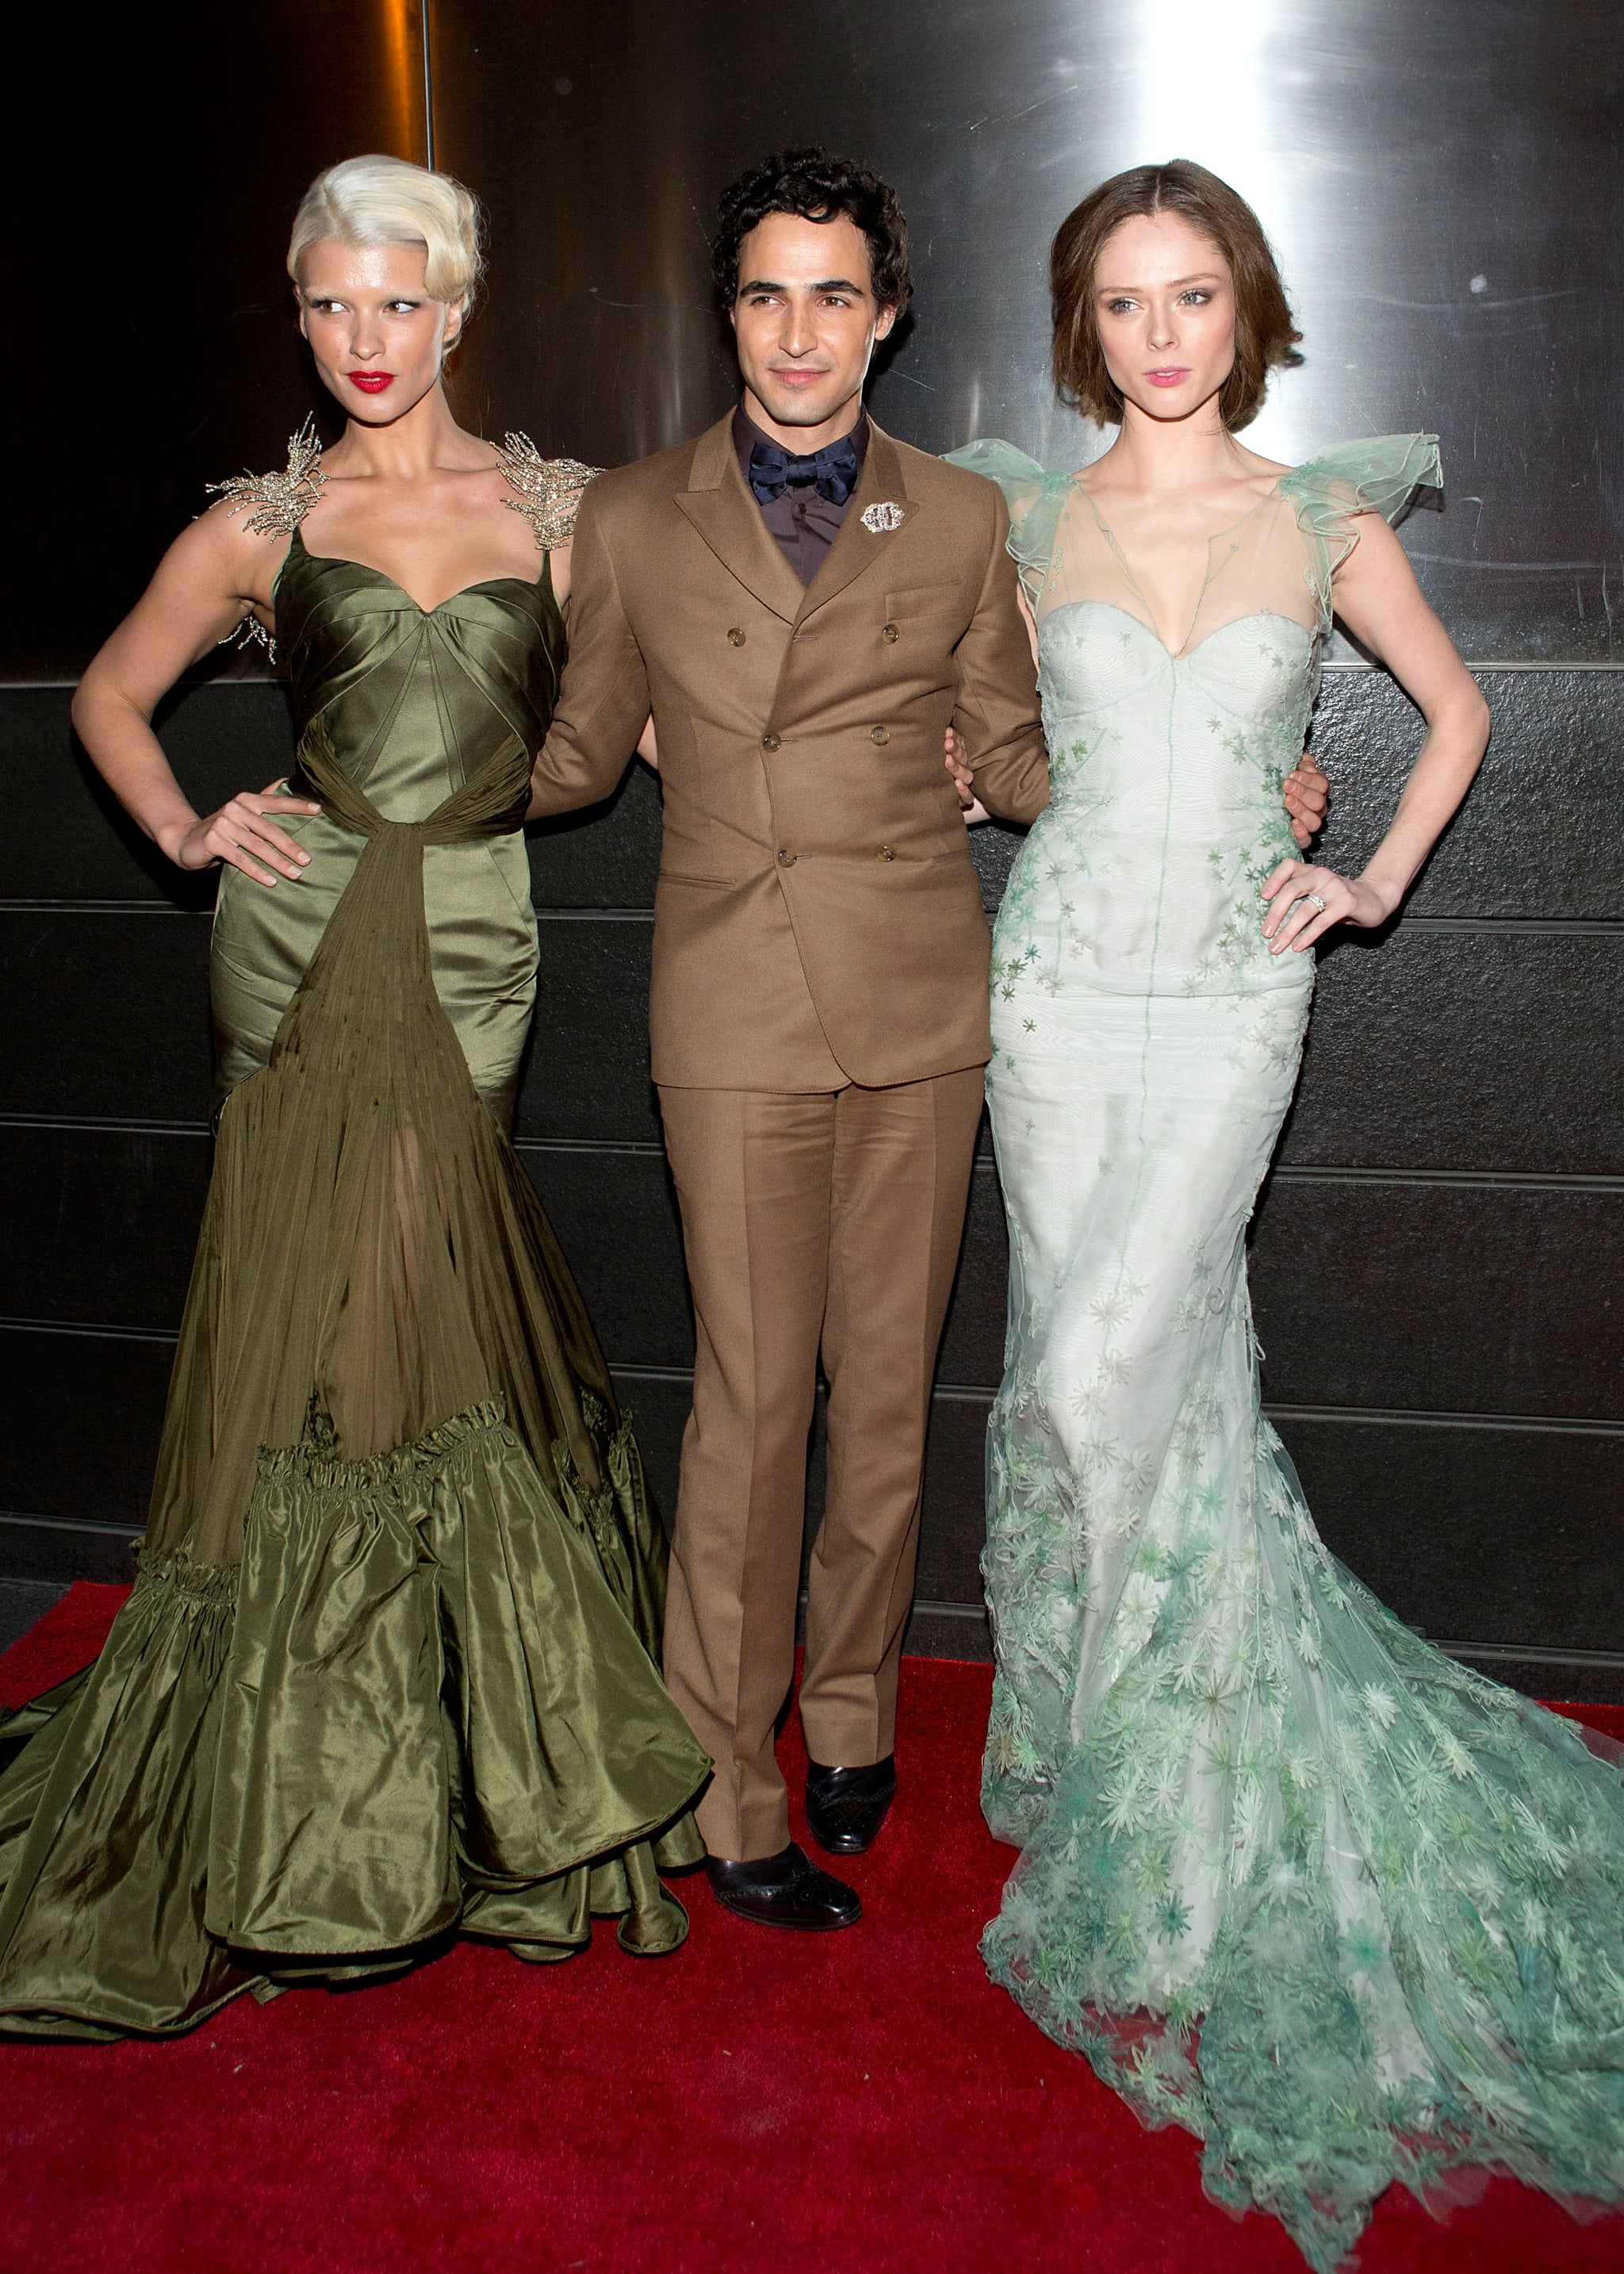 At the ninth annual Spring Dinner Dance New Year's in April gala, Zac Posen posed with his loyal ladies — Crystal Renn and Coco Rocha. The two stunners both wore gorgeous body-con gowns by Posen, too.